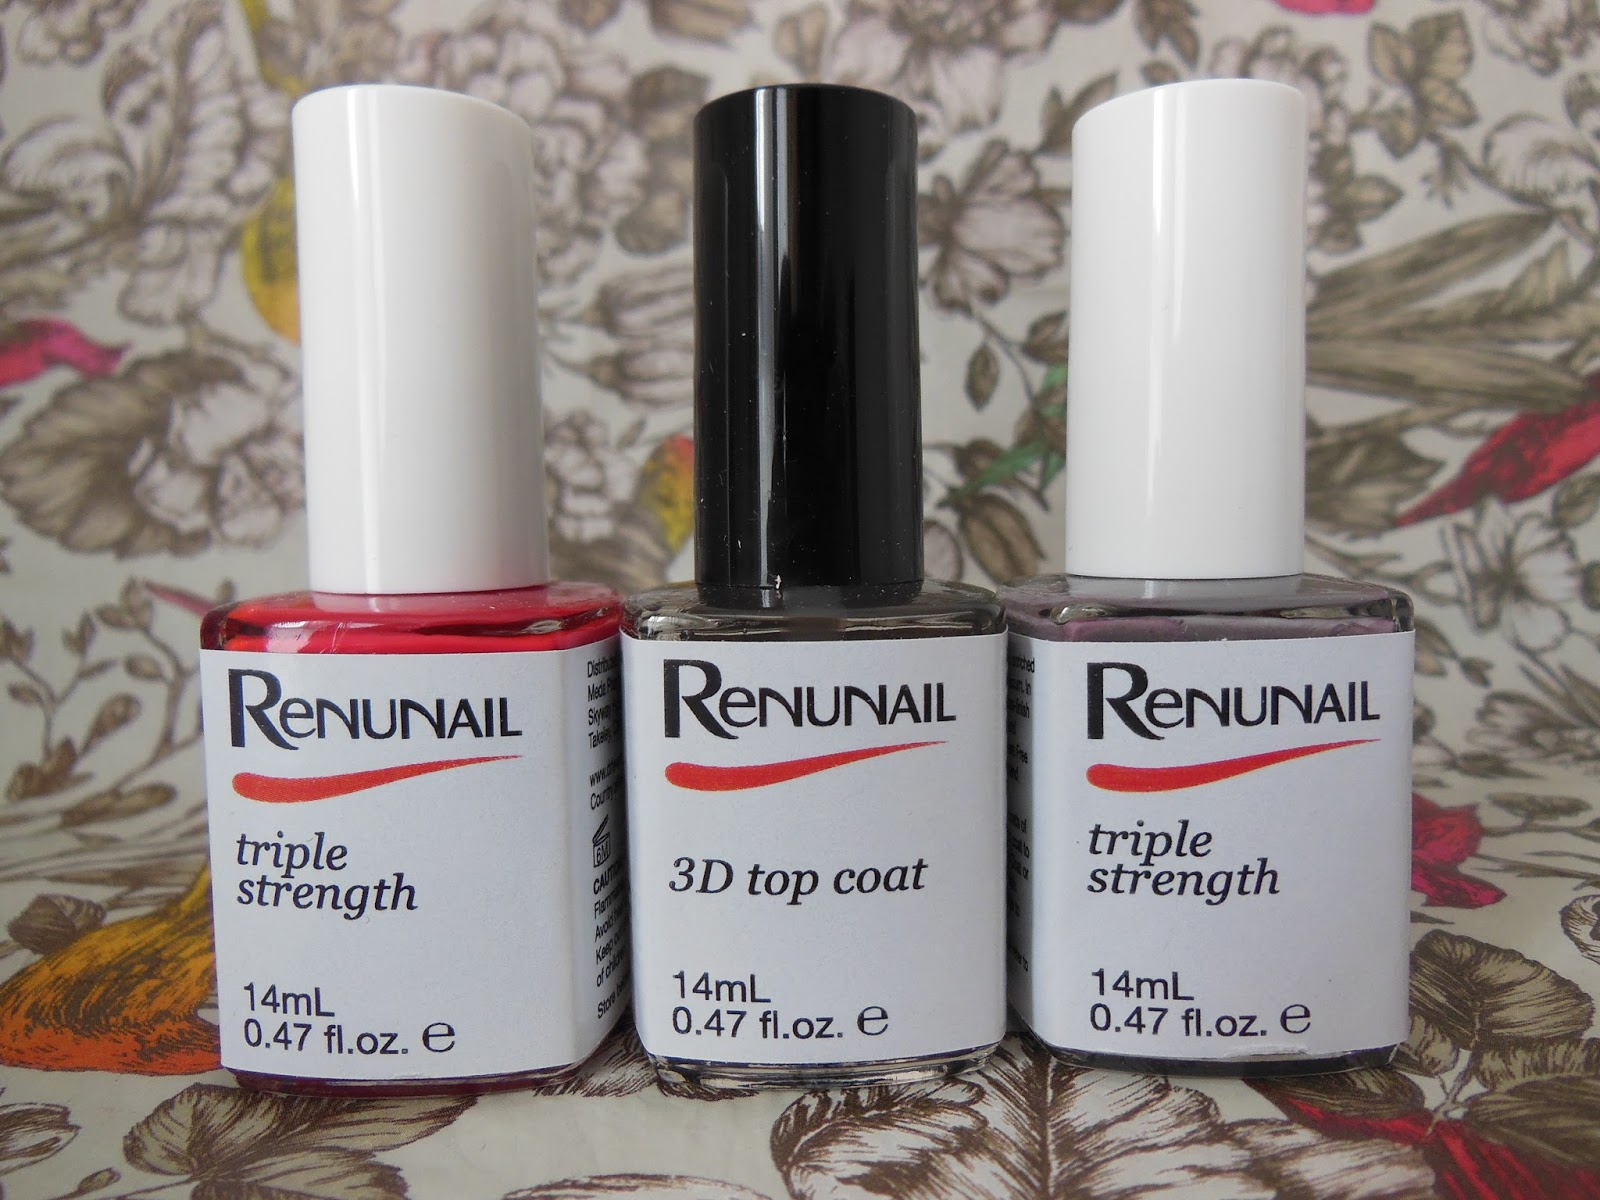 Dr Lewinn's renunail triple strength nail colours